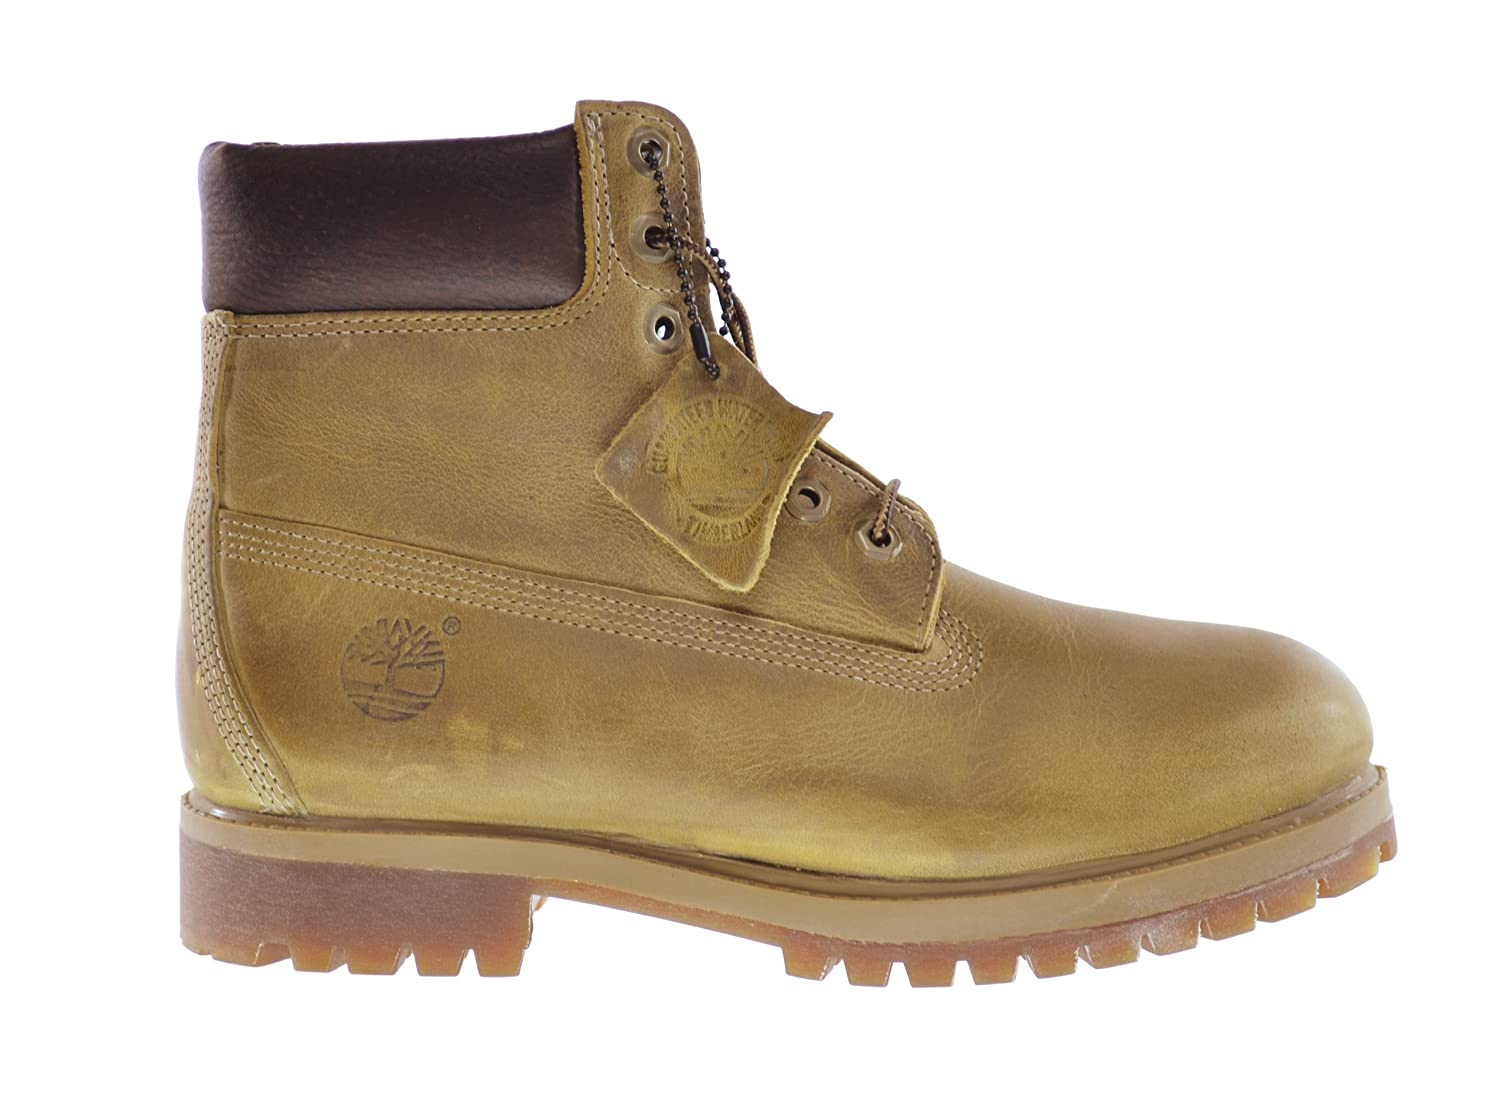 cb0f1182c2 Amazon.com | Timberland AF 6 Inch Anniversary Men's Boots Wheat/Black |  Boots